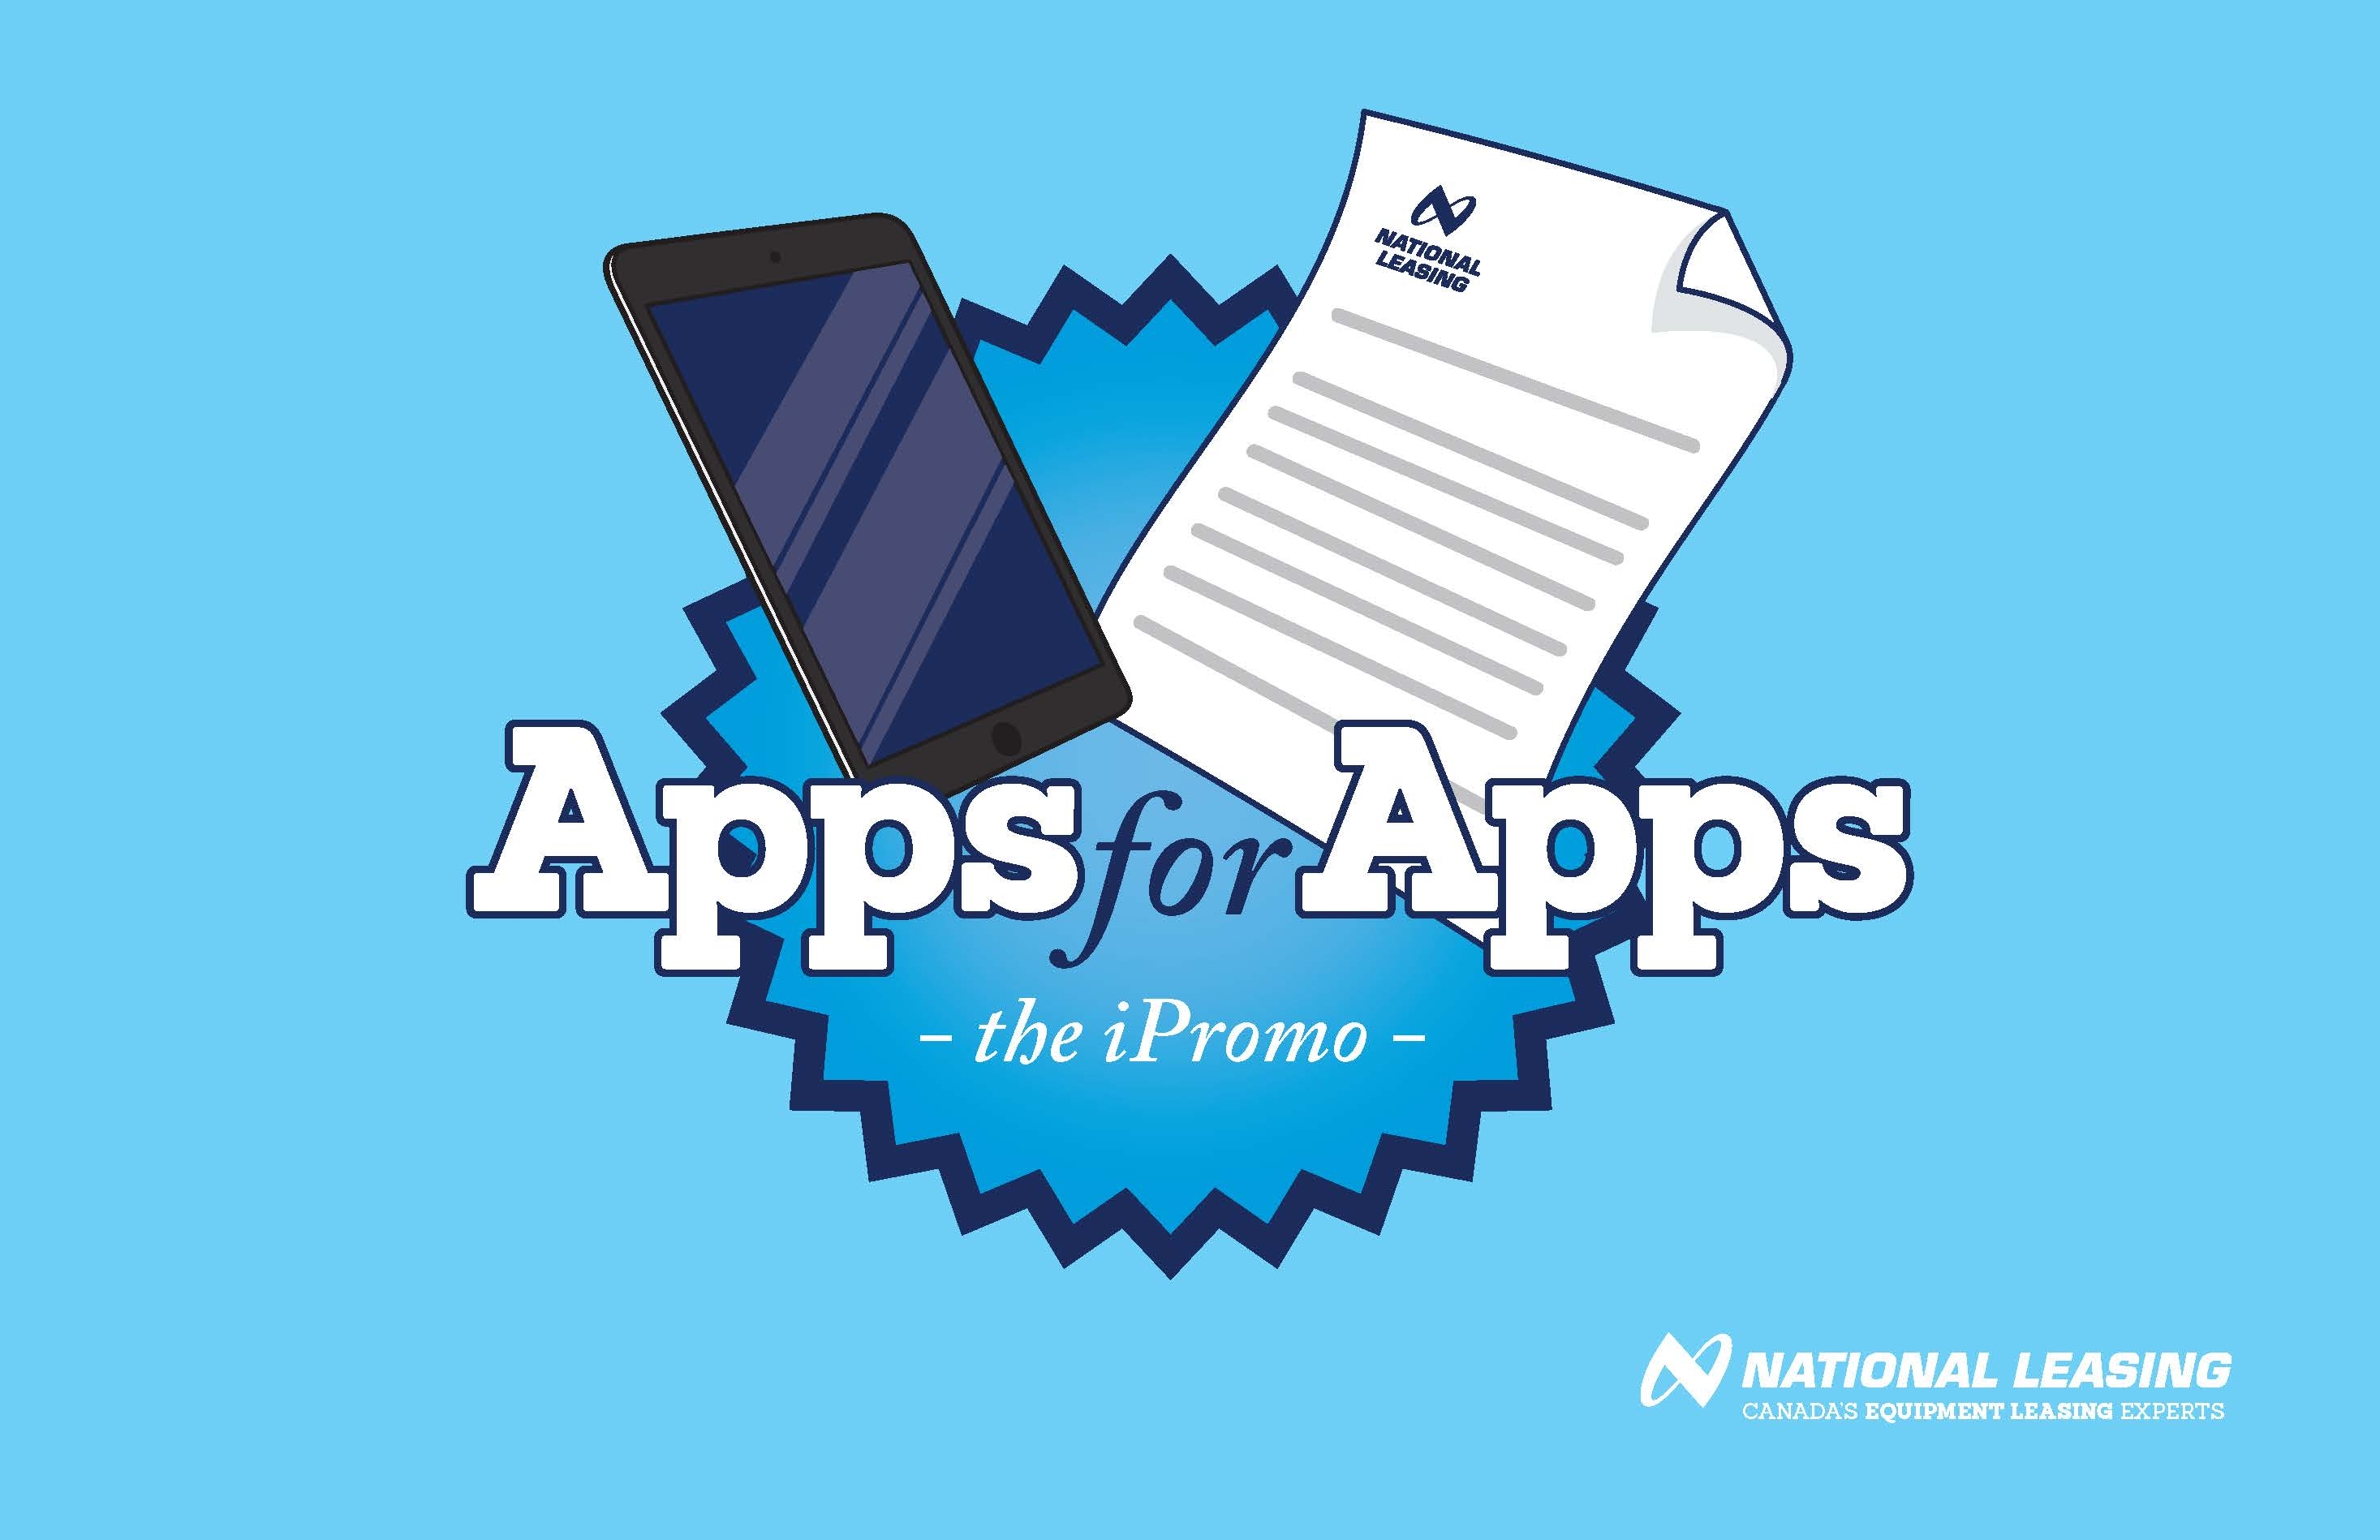 National Leasing Apps for Apps promotion